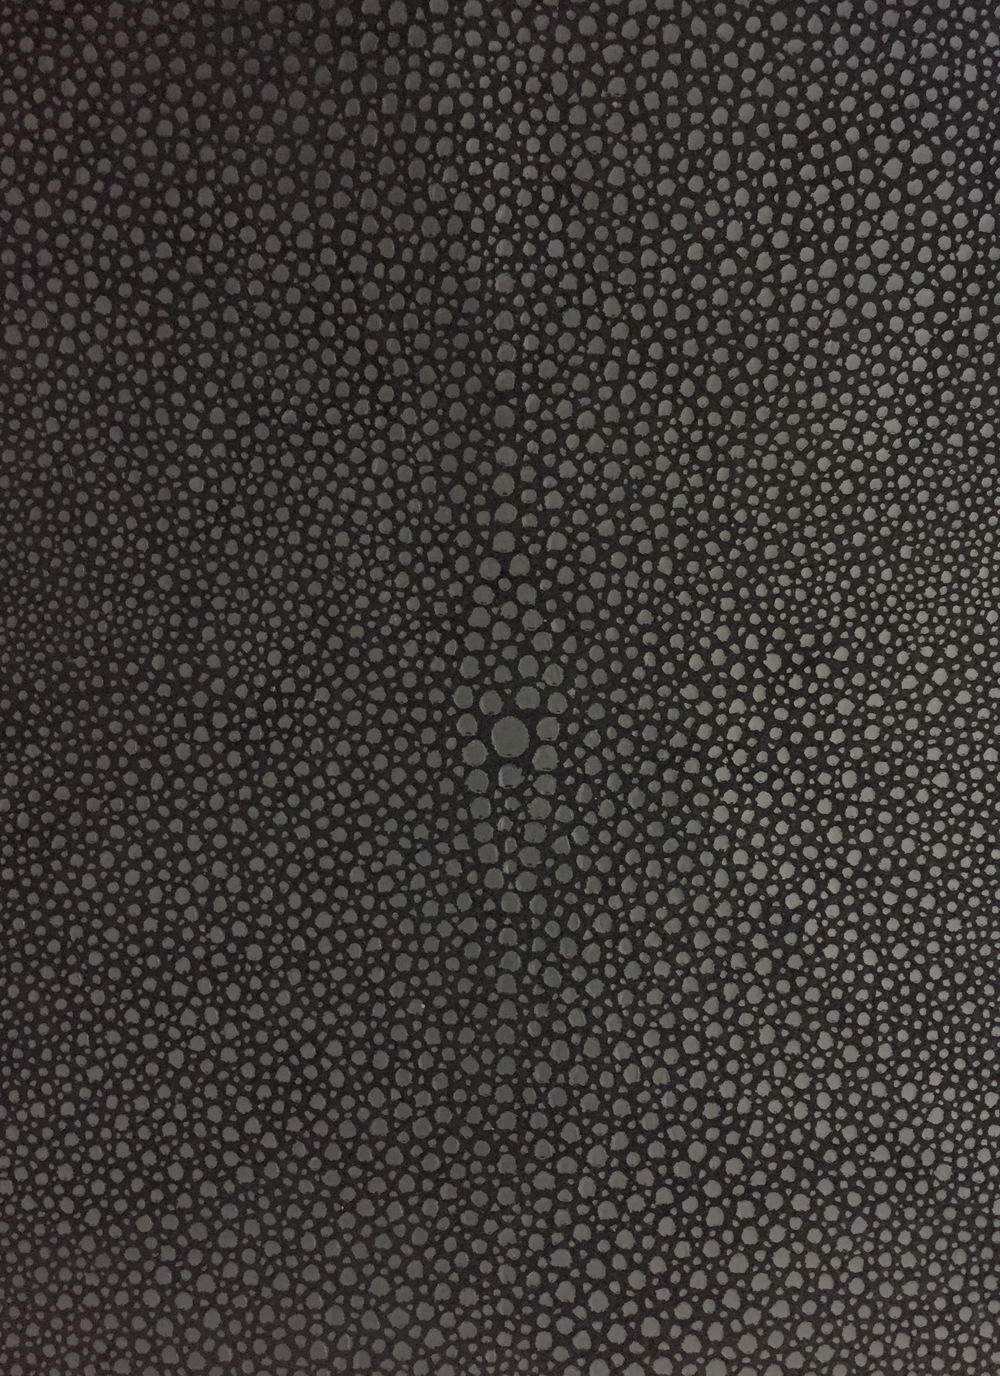 Shagreen Print gunmetal metallic on black